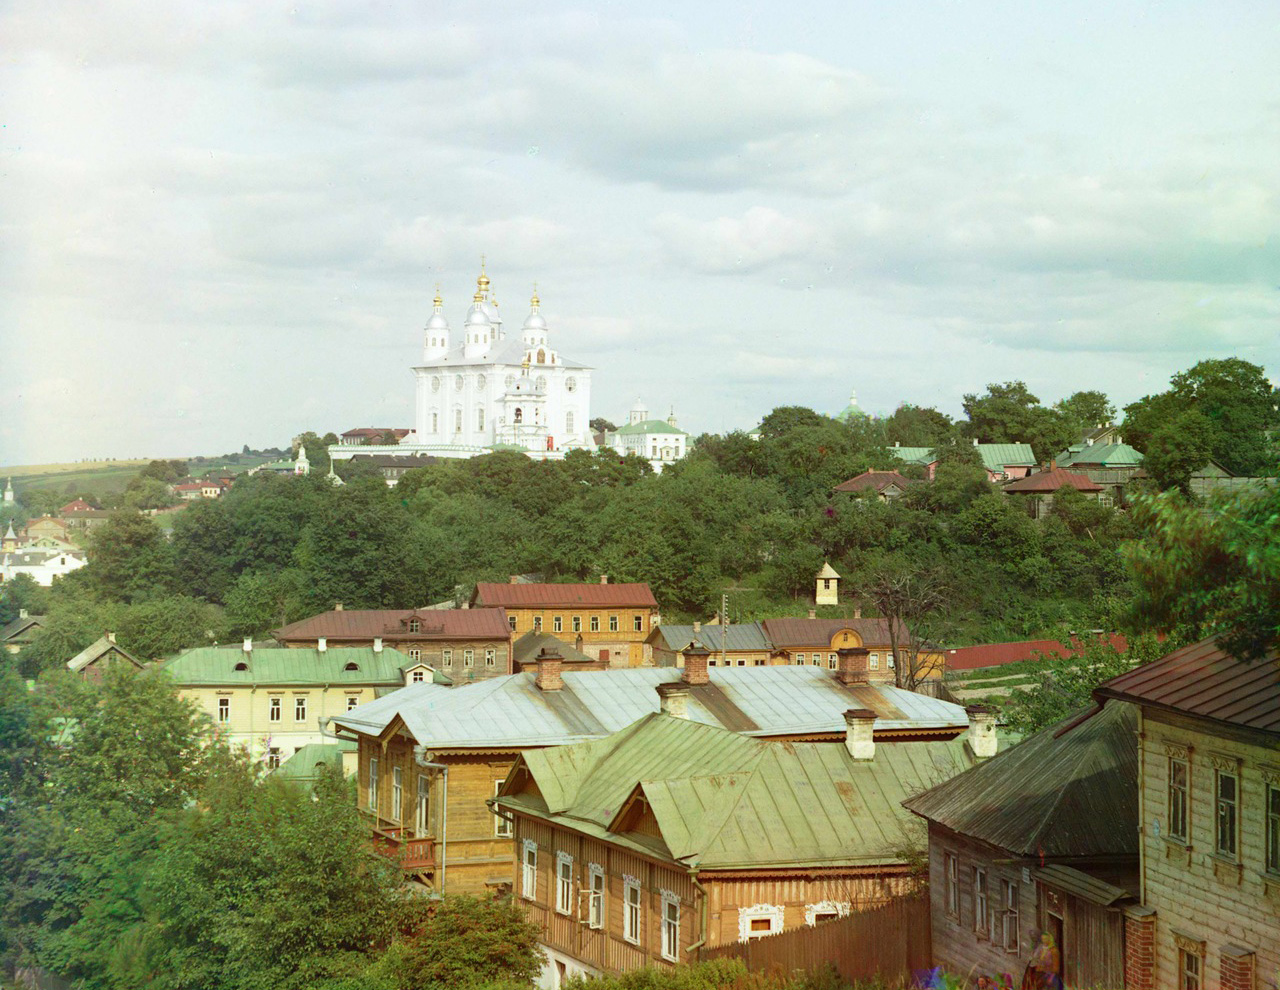 L'empereur Nicolas II appréciait les photographies en couleur et, avec sa bénédiction, Sergueï Prokoudine-Gorski obtint la permission et le financement pour documenter la Russie en couleur. Sur la photo : Cathédrale de la Dormition, Smolensk.